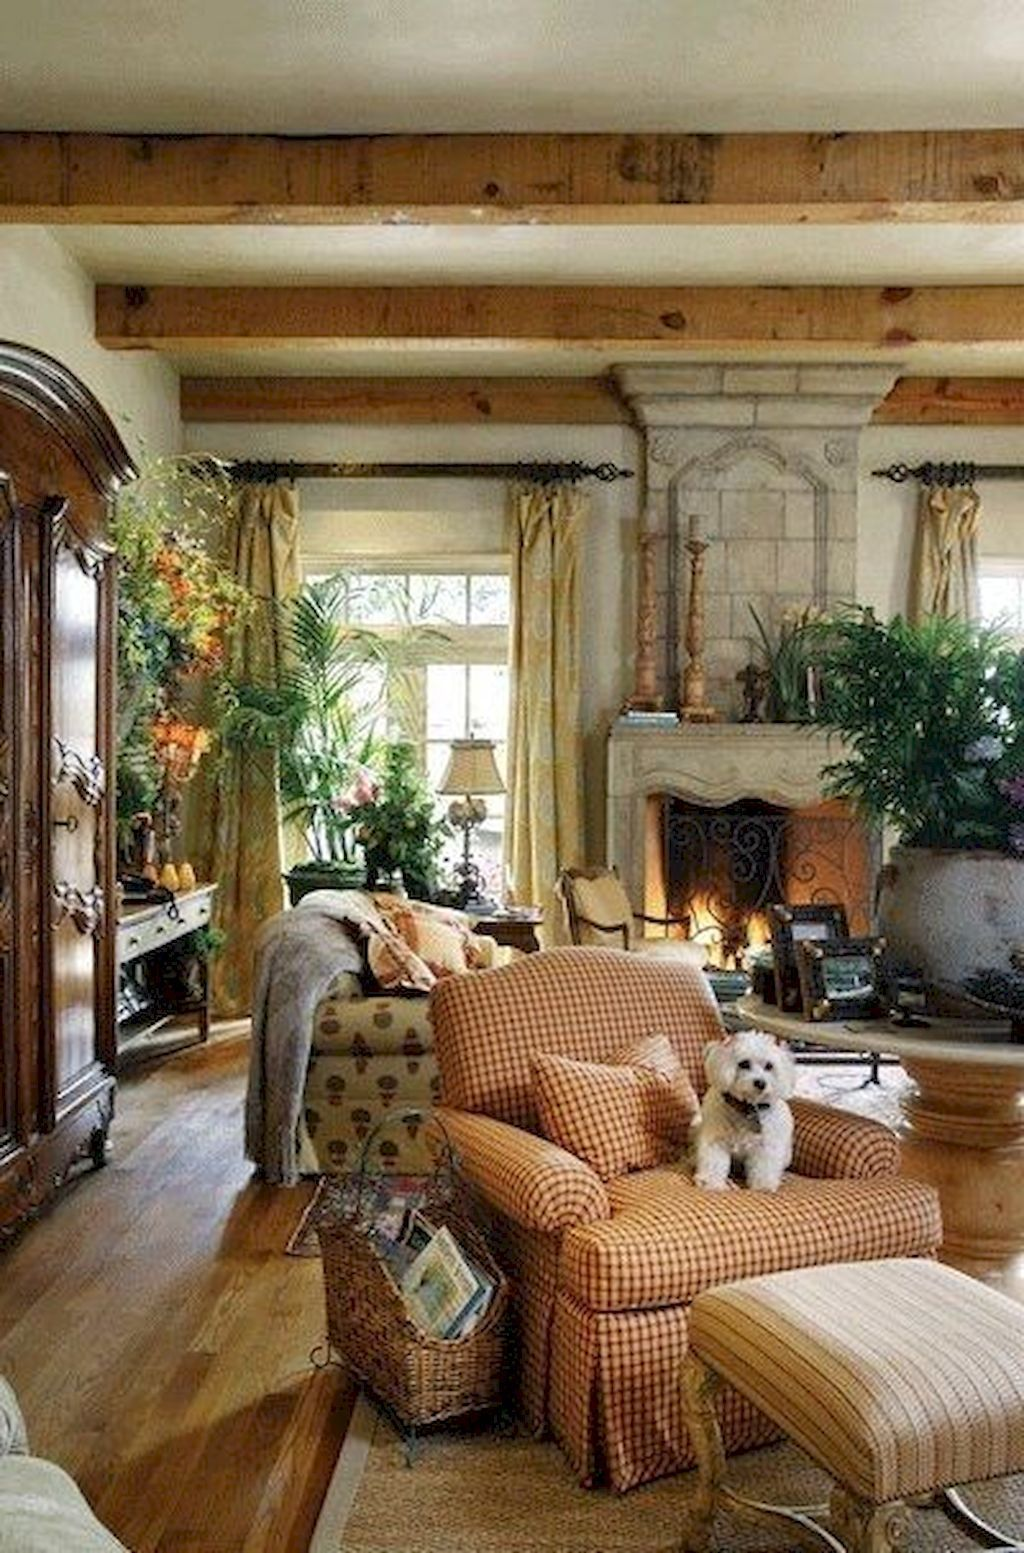 8+ Wonderful French Country Design Ideas For Living Room - 8+ Wo